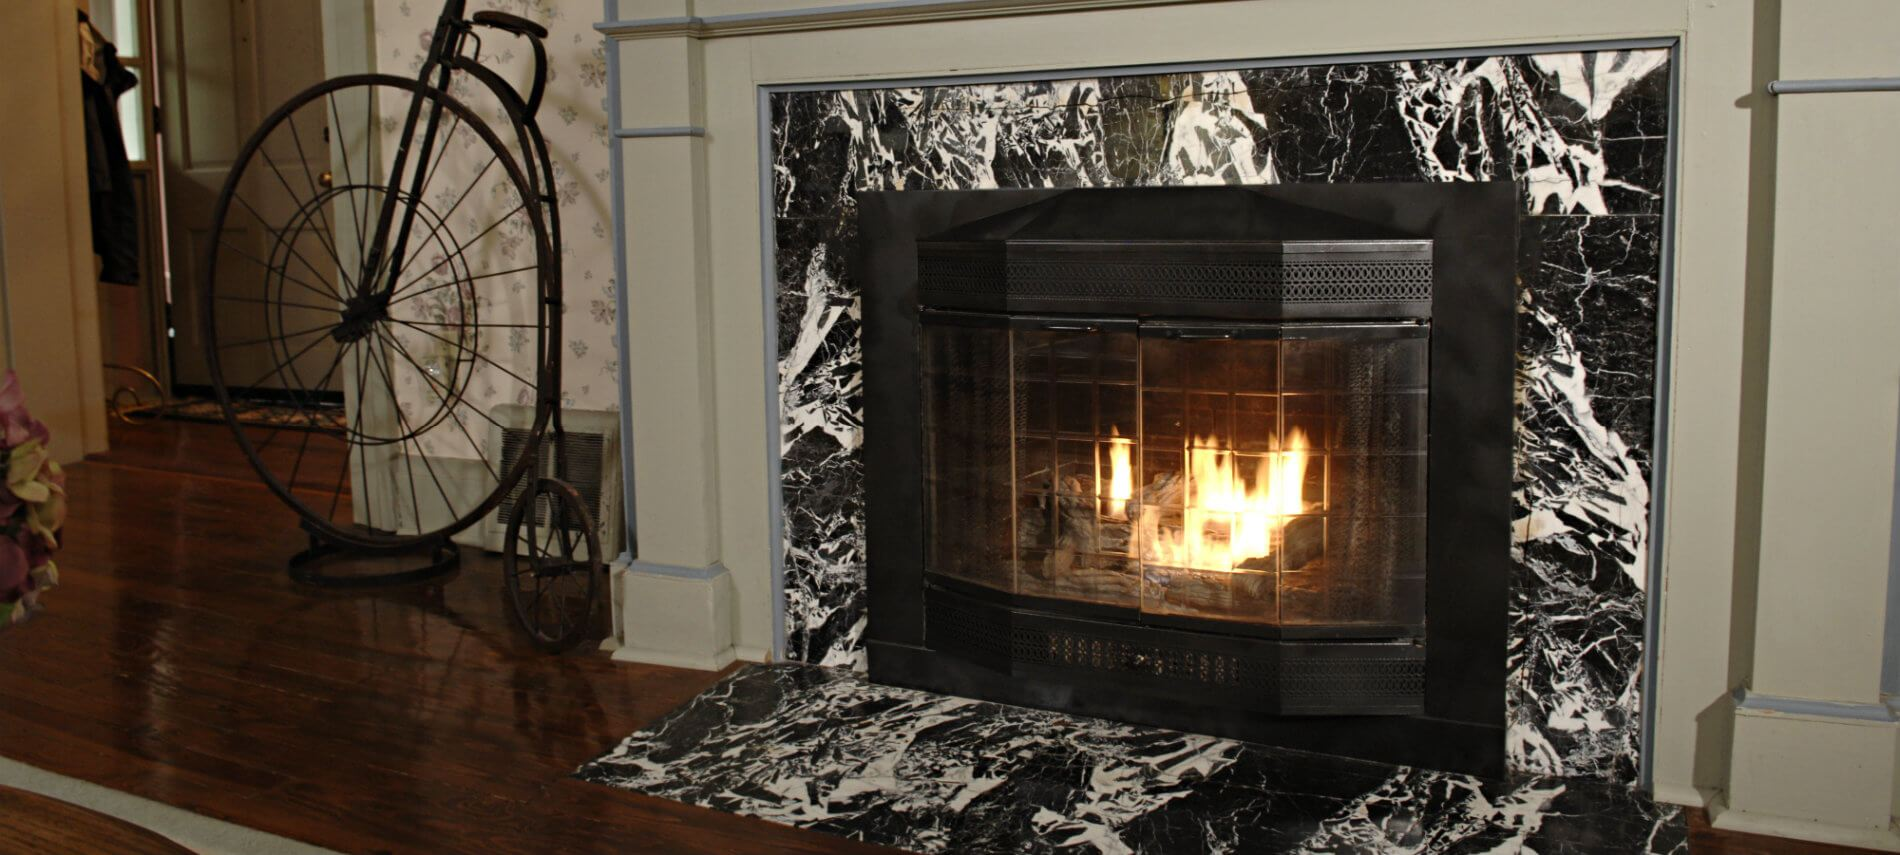 Cozy warm fire in a fireplace with black and white marble and tan painted mantel surround